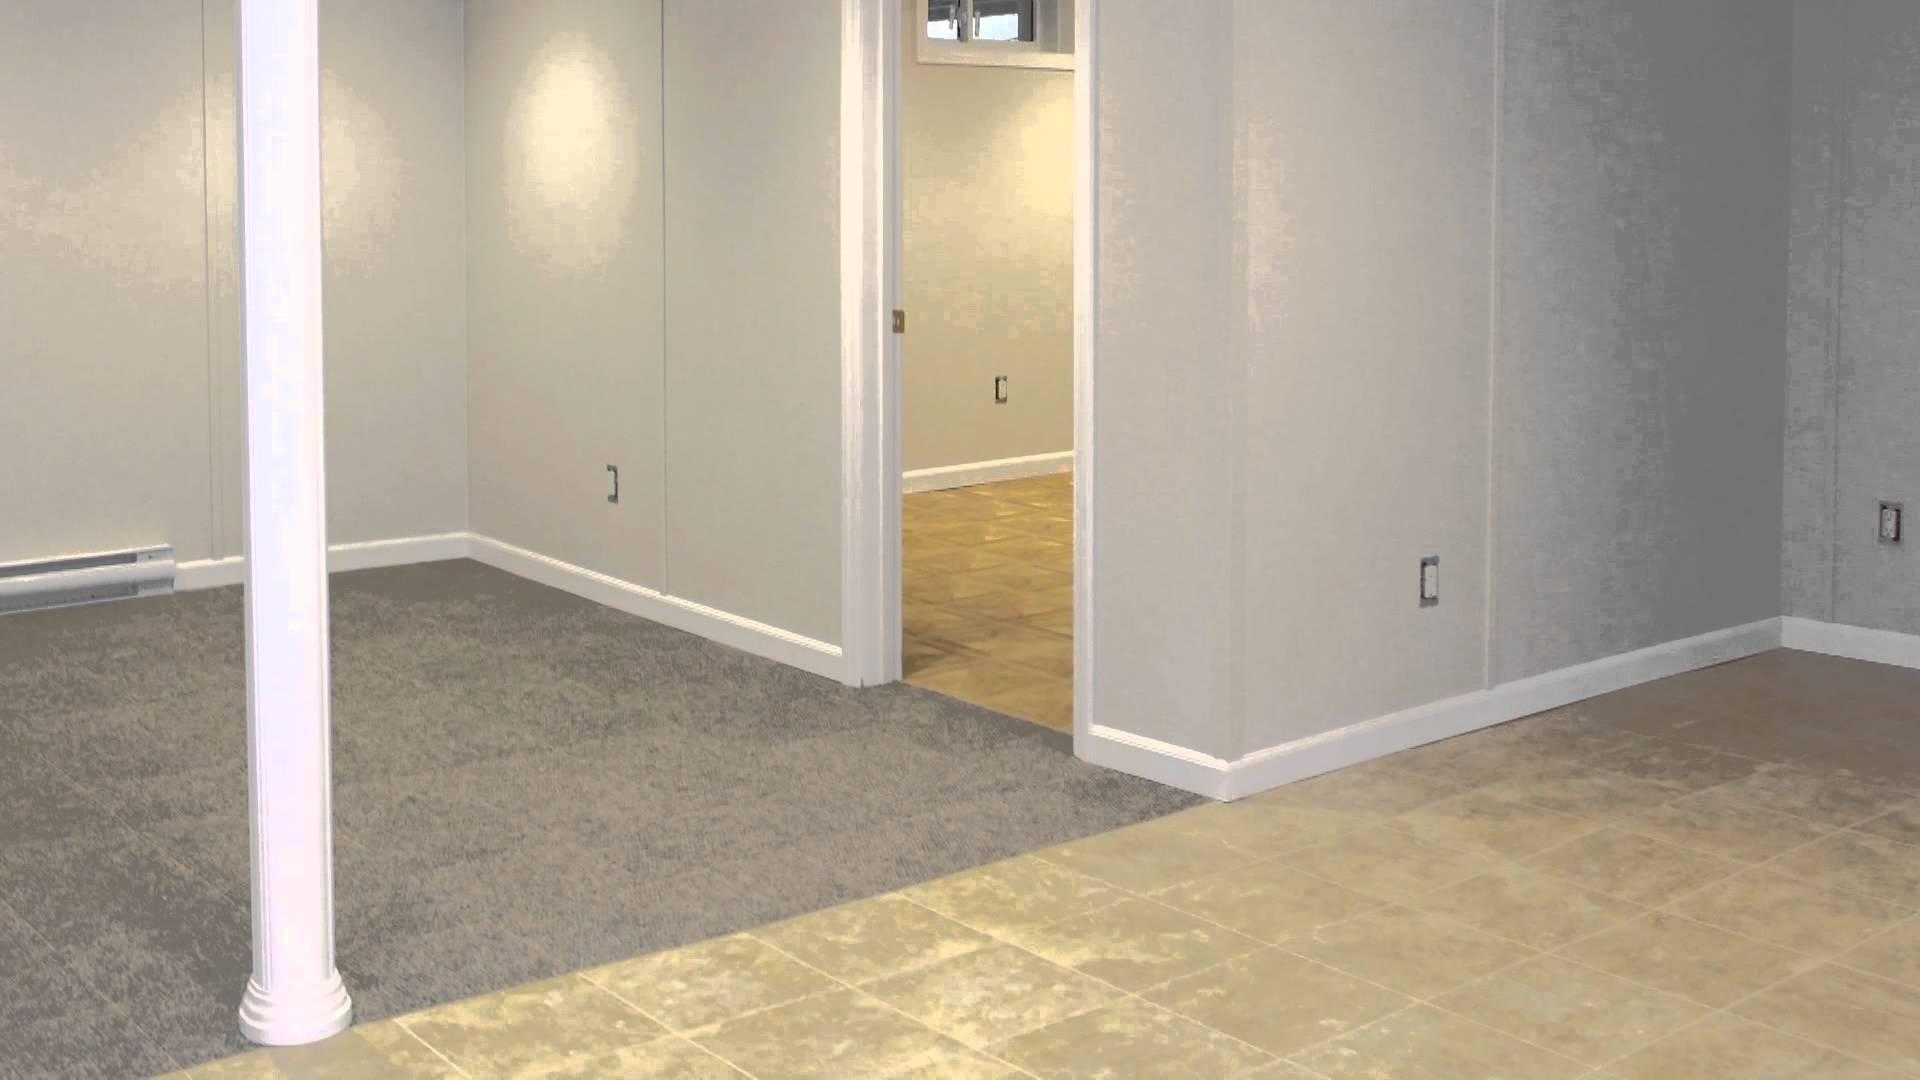 Paneled Wall Systems For Basements Paneled Wall Systems For Basements basement finishing waterproof wall flooring products ask the 1920 X 1080